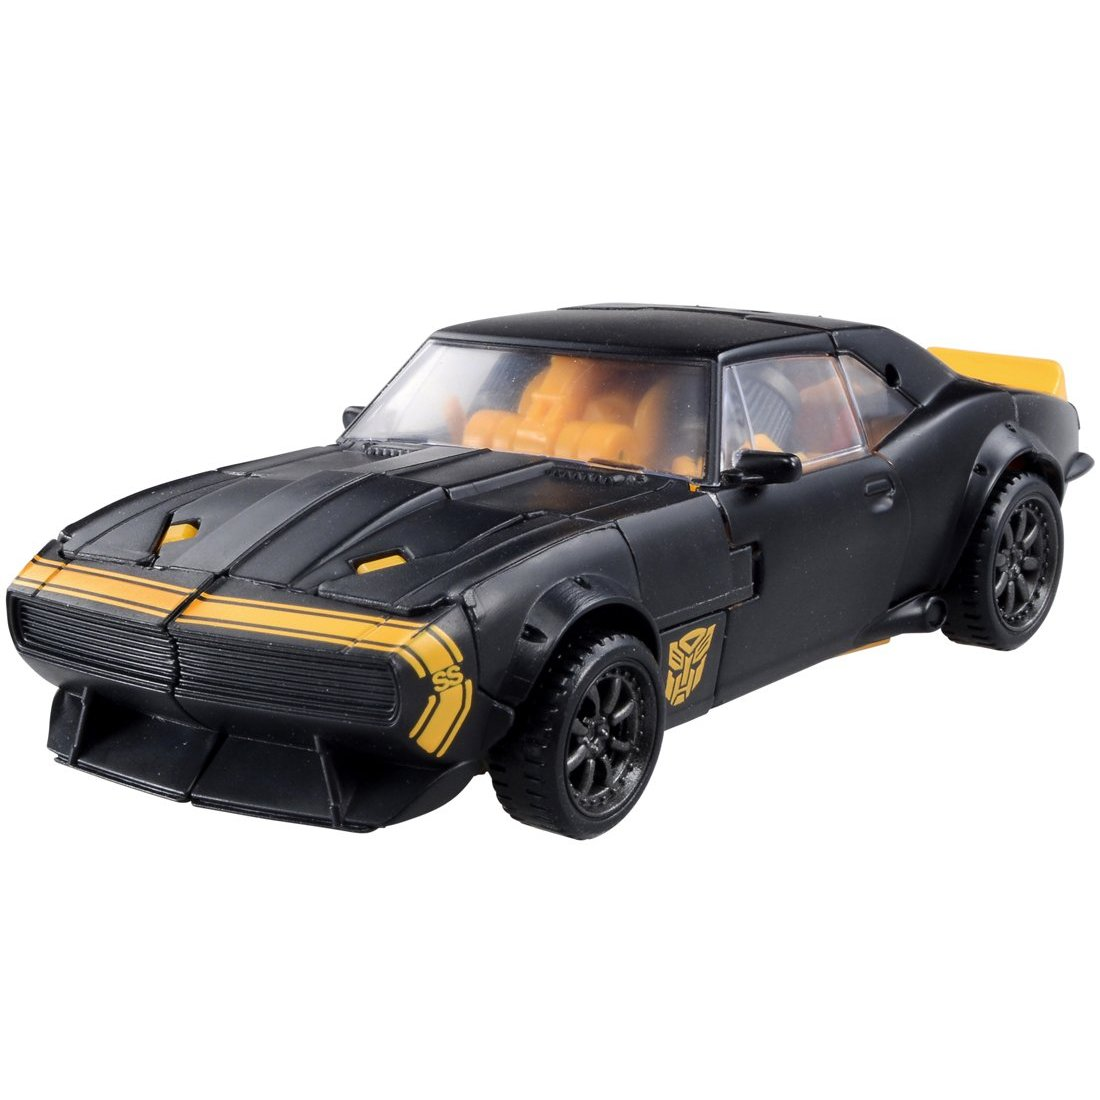 Bumblebee High Octane Transformers Toys Tfw2005